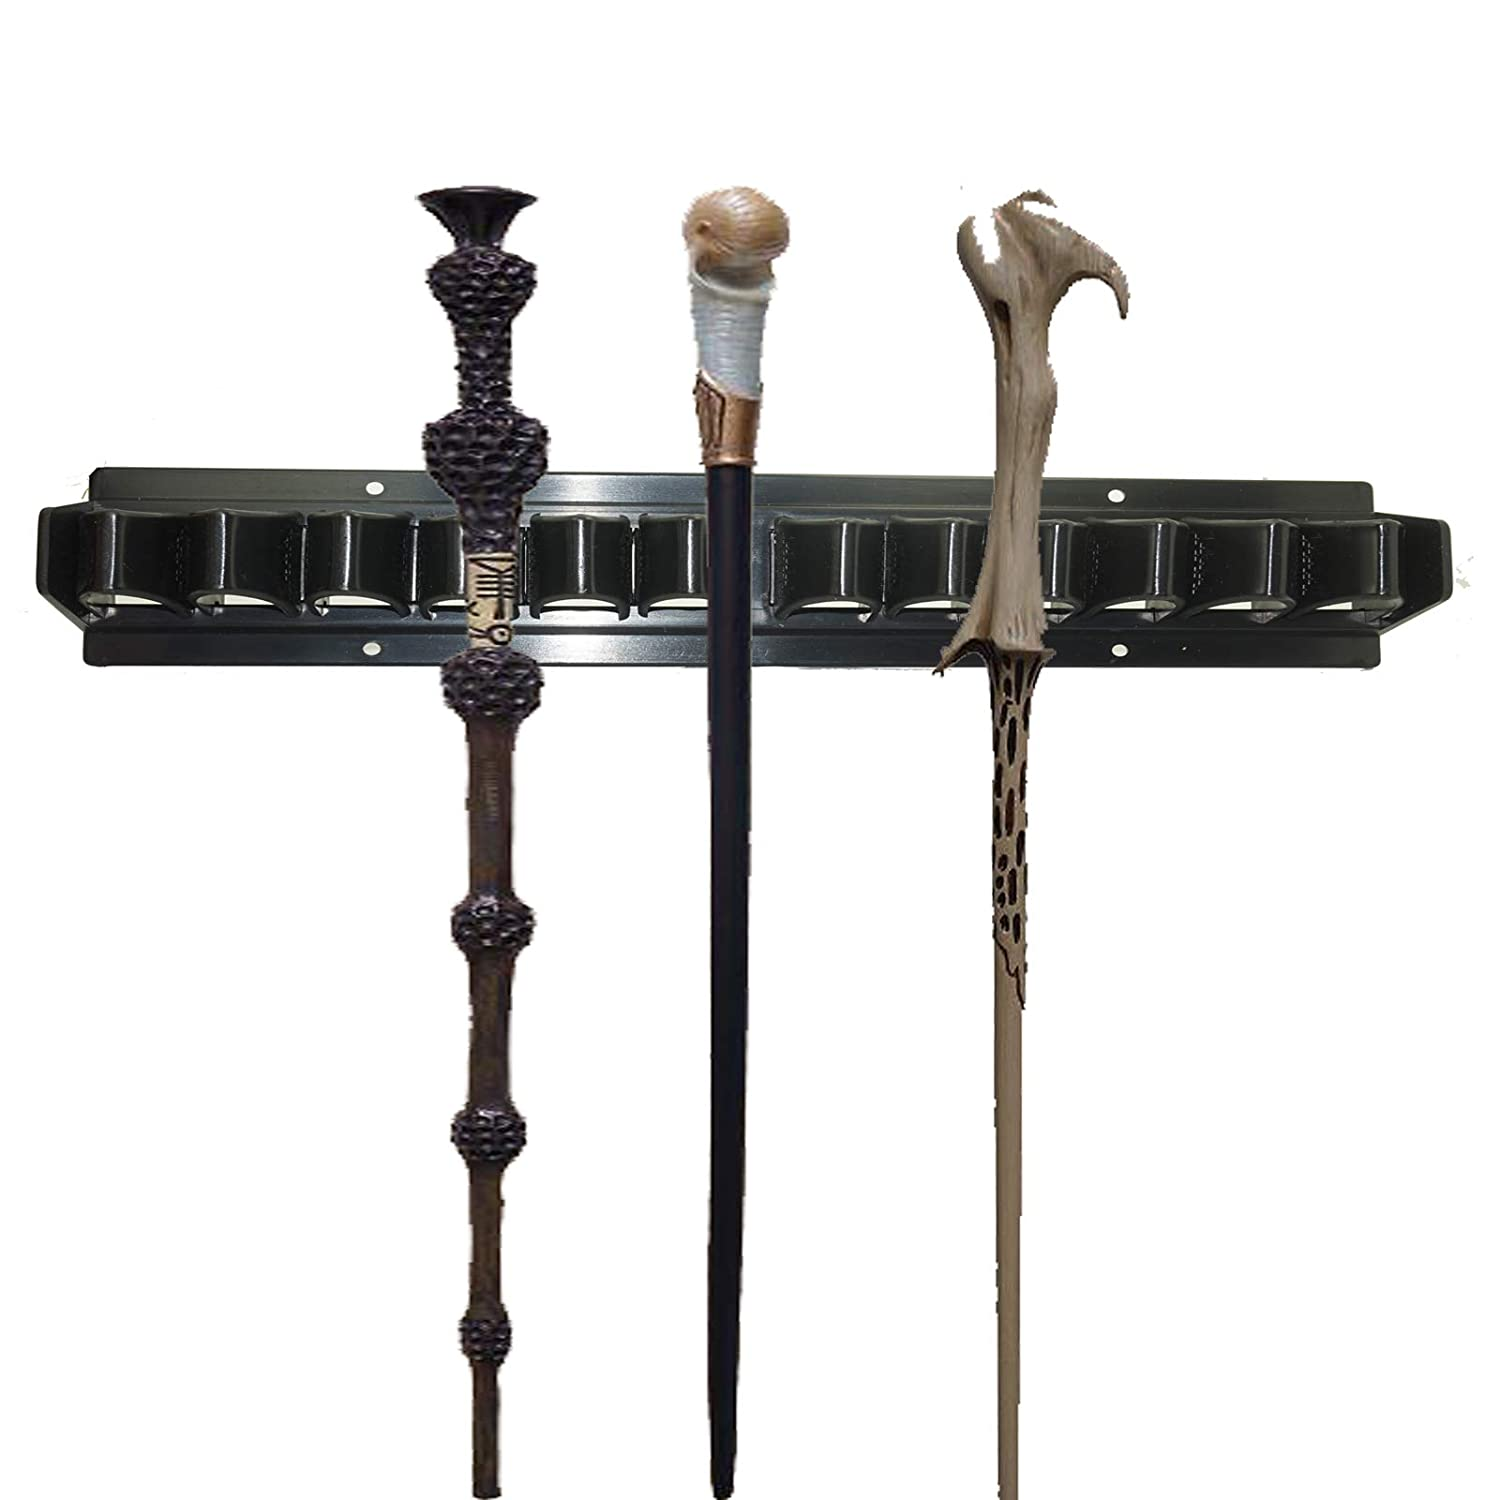 Holder Display Stand/Plastic Bracket Rack for 10 - Wand Harry Potter Dumbledore Hermoine Wand Collection Weasley Twins, Wand Stand Display, Wand Holder Decoration (No Wand)